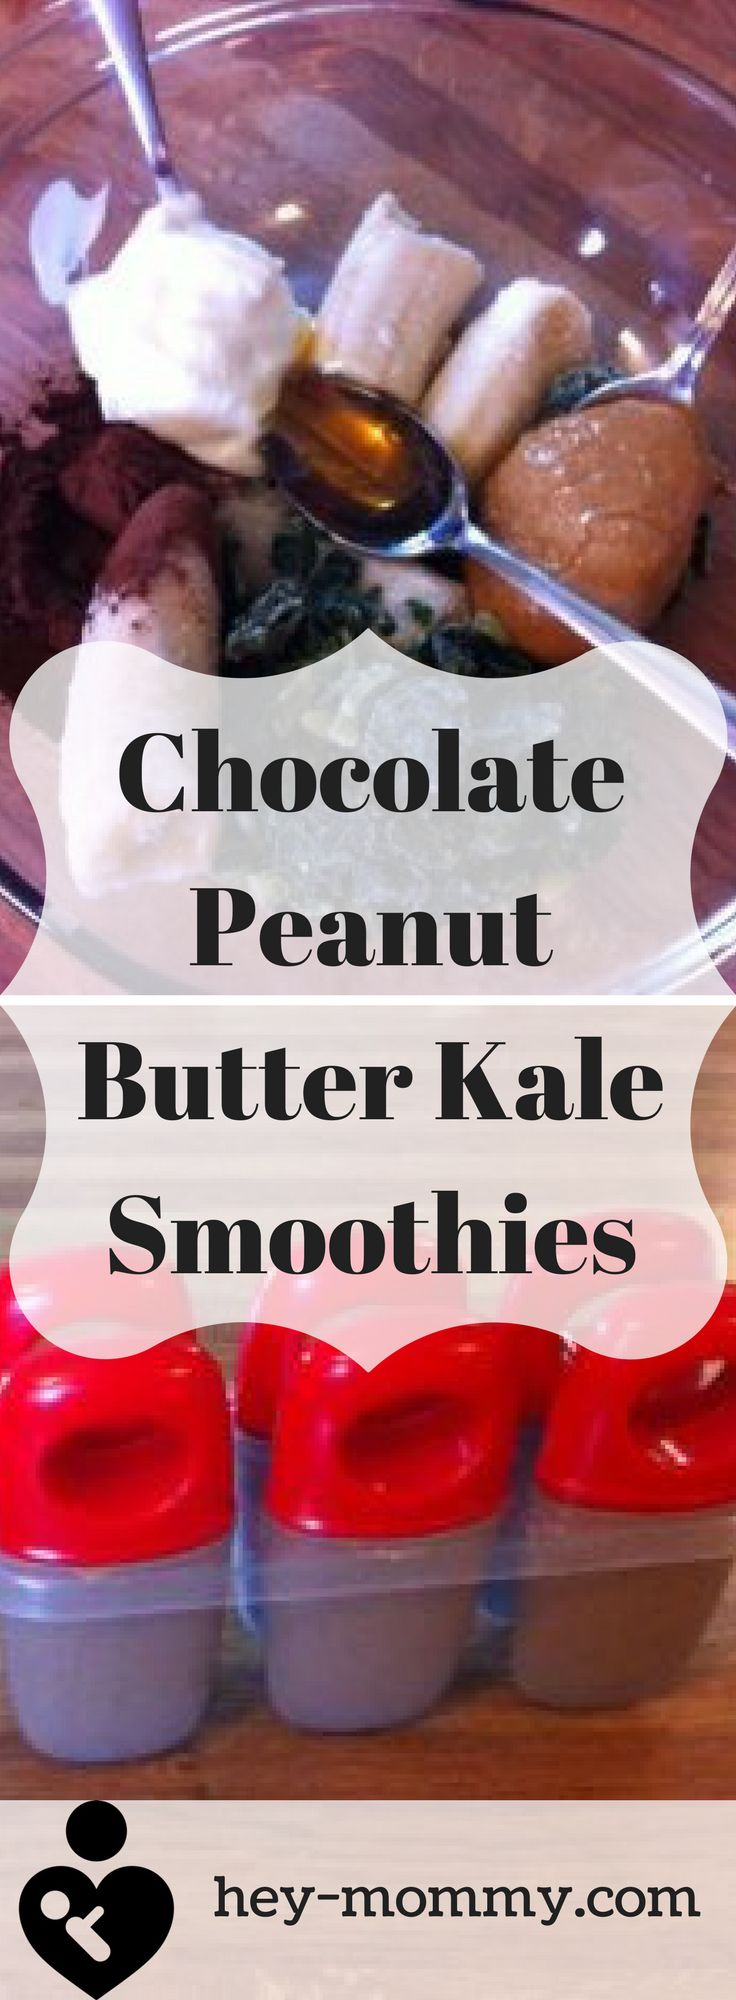 Healthy smoothies and popsicles. Chocolate Peanut Butter Kale Smoothie recipe.